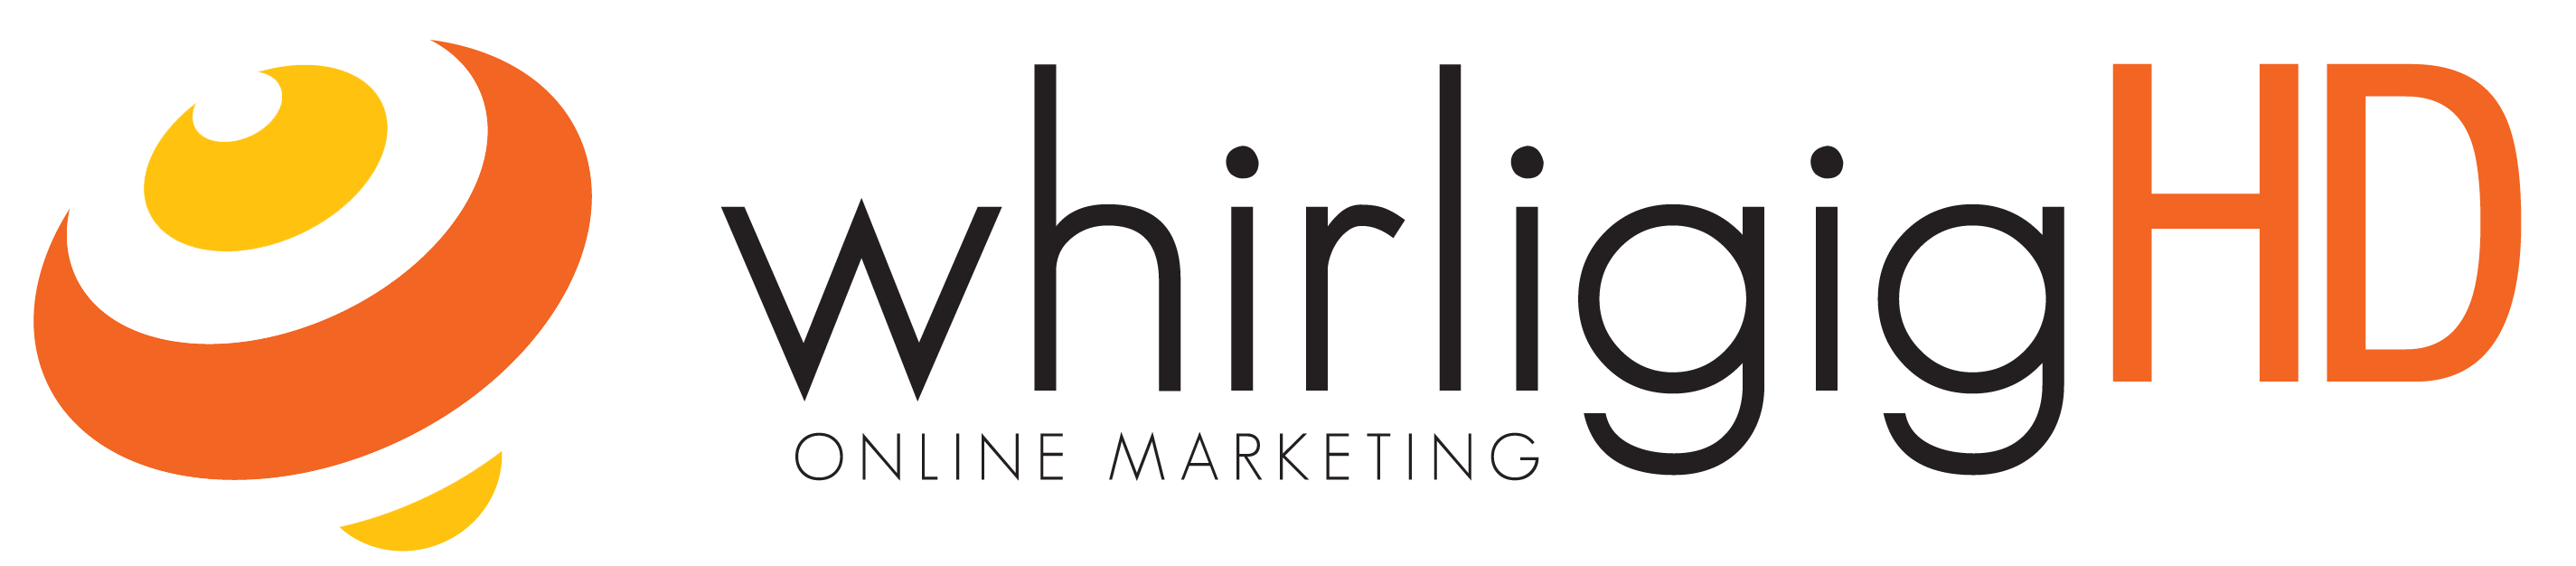 WhirligigHD - Value leader in photography, video, 3D and drone for Real Estate